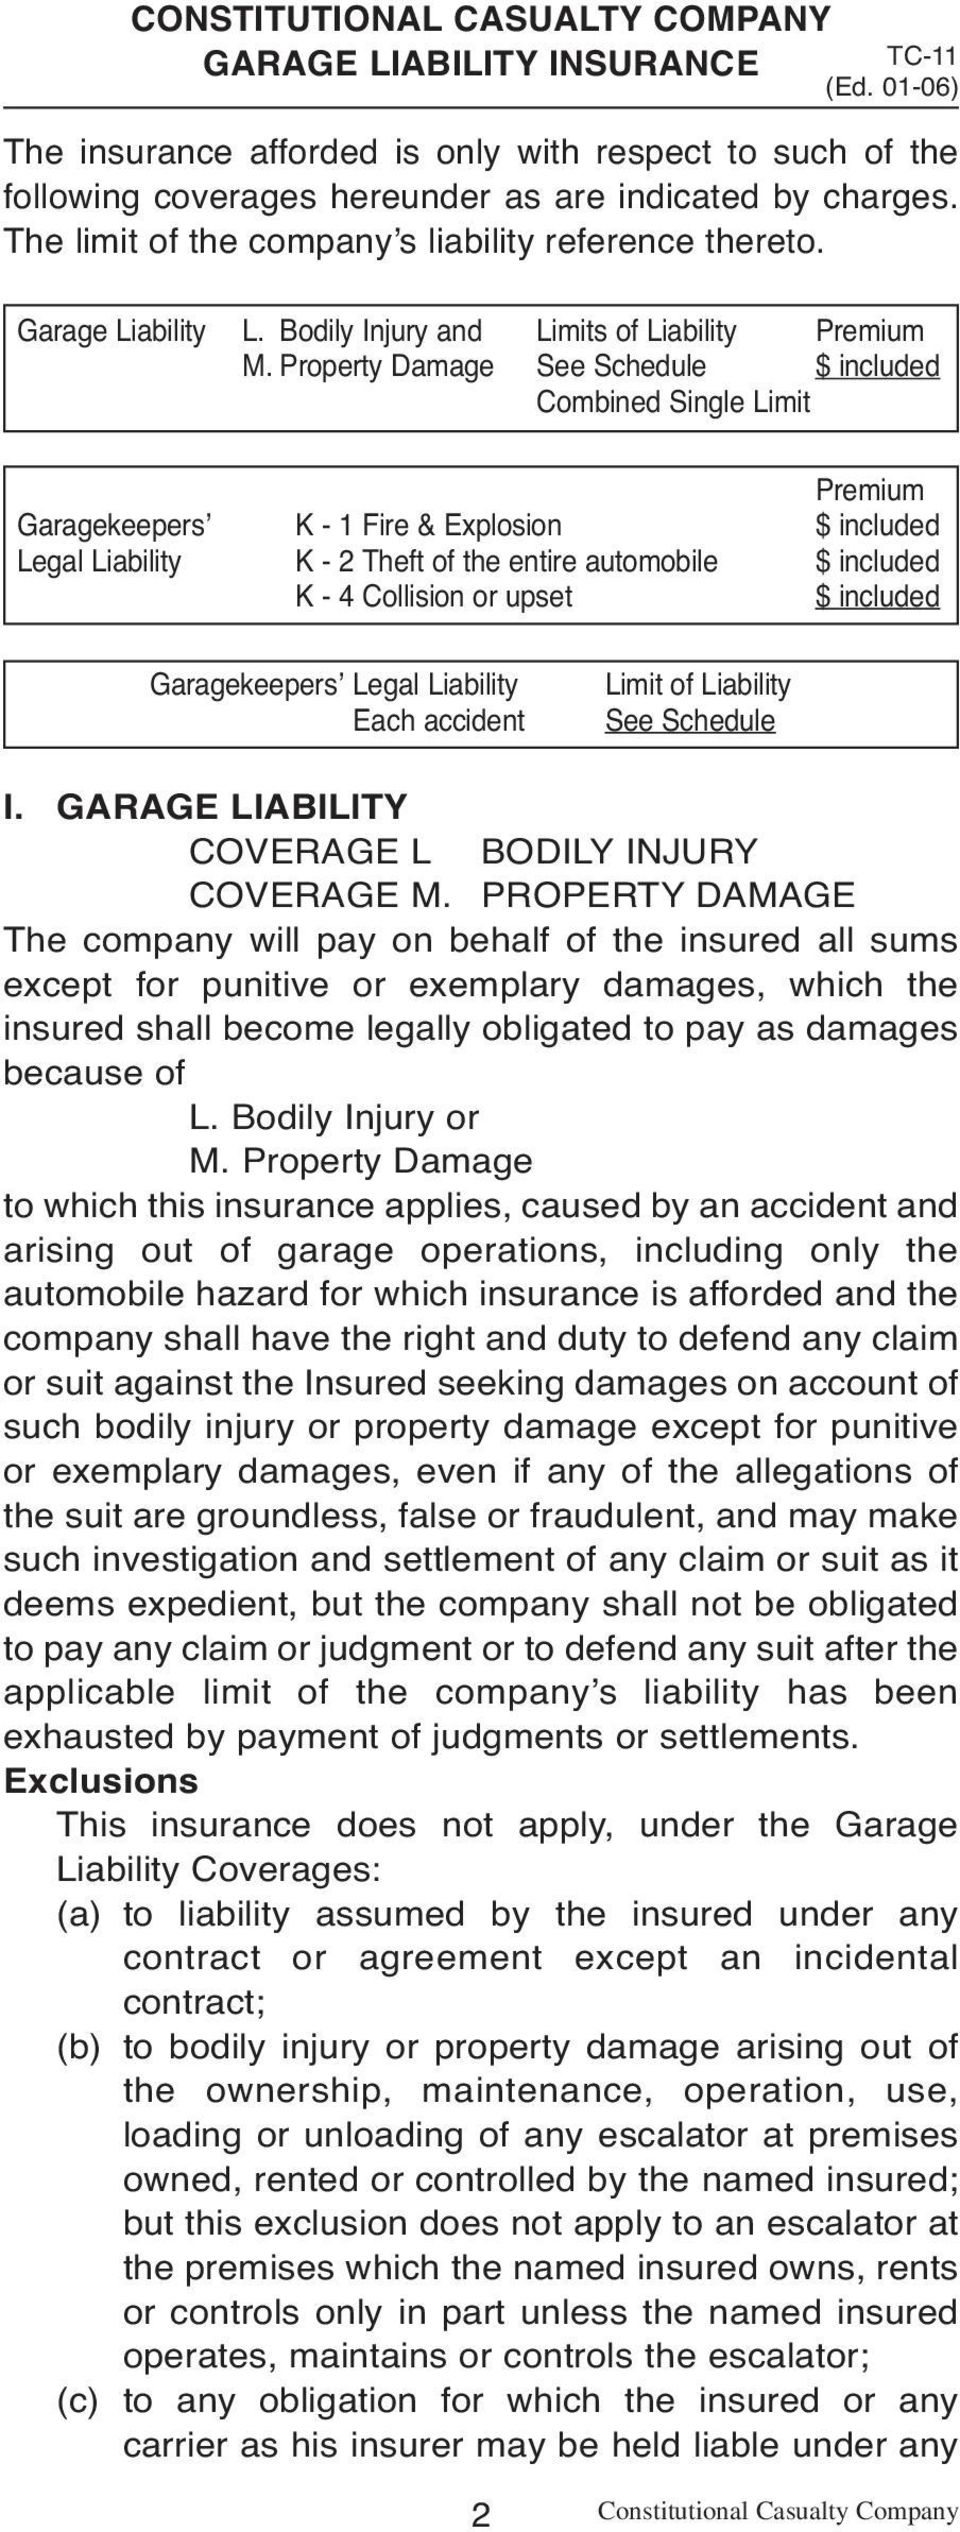 Property Damage See Schedule $ included Combined Single Limit Premium Garagekeepers K - 1 Fire & Explosion $ included Legal Liability K - 2 Theft of the entire automobile $ included K - 4 Collision